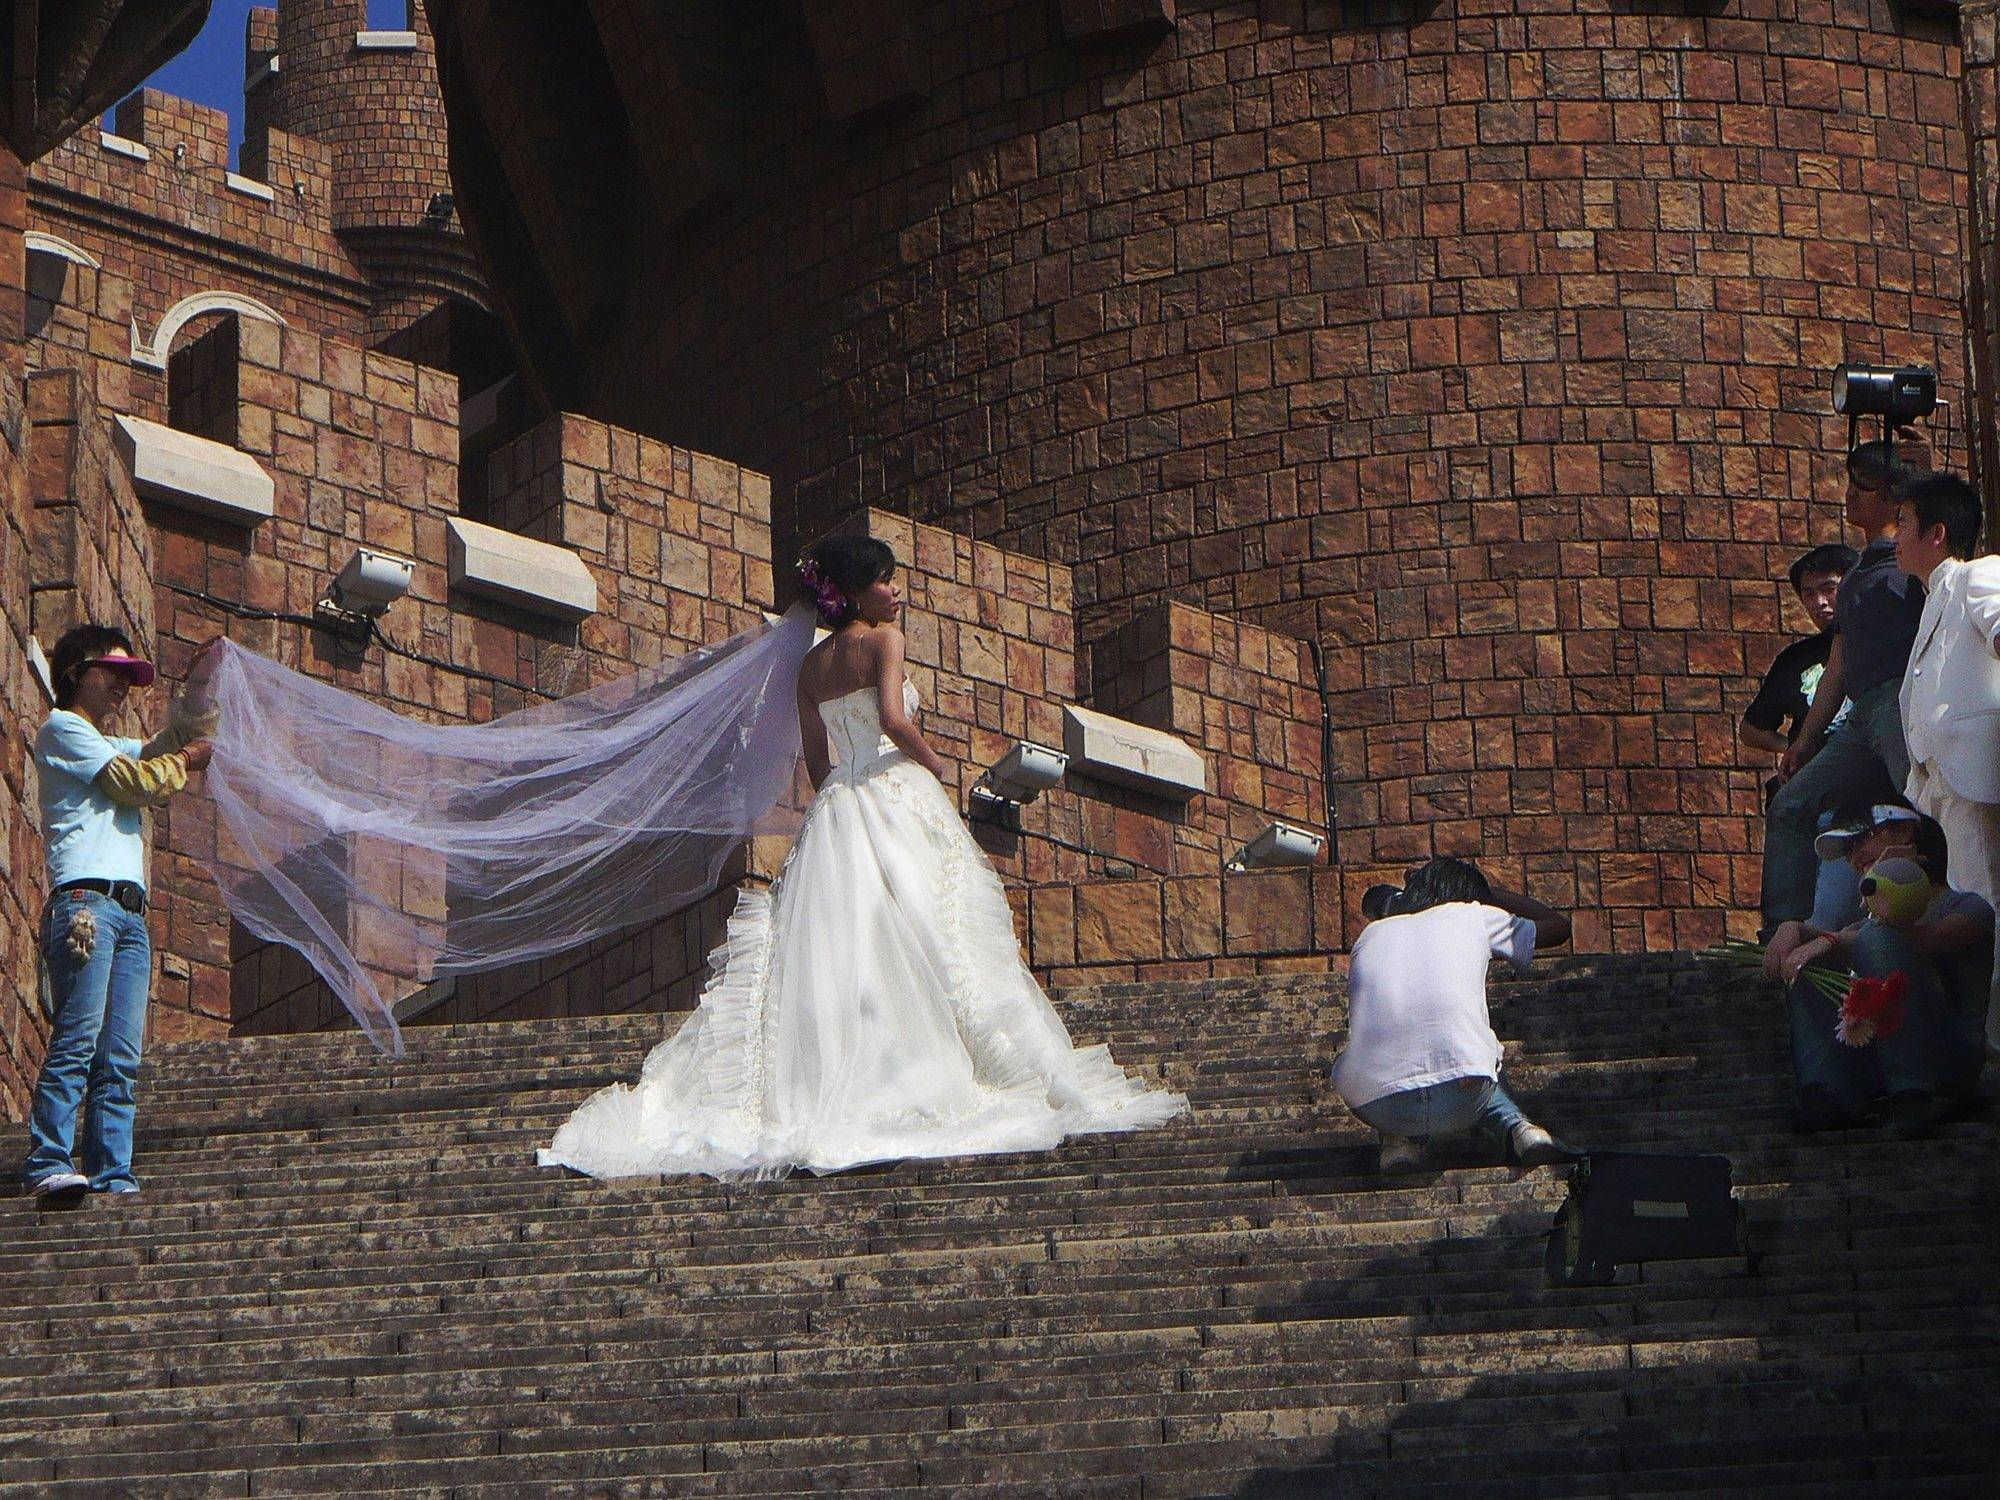 During a school trip to China, a bride was having pictures taken at a castle in Dalian, China.